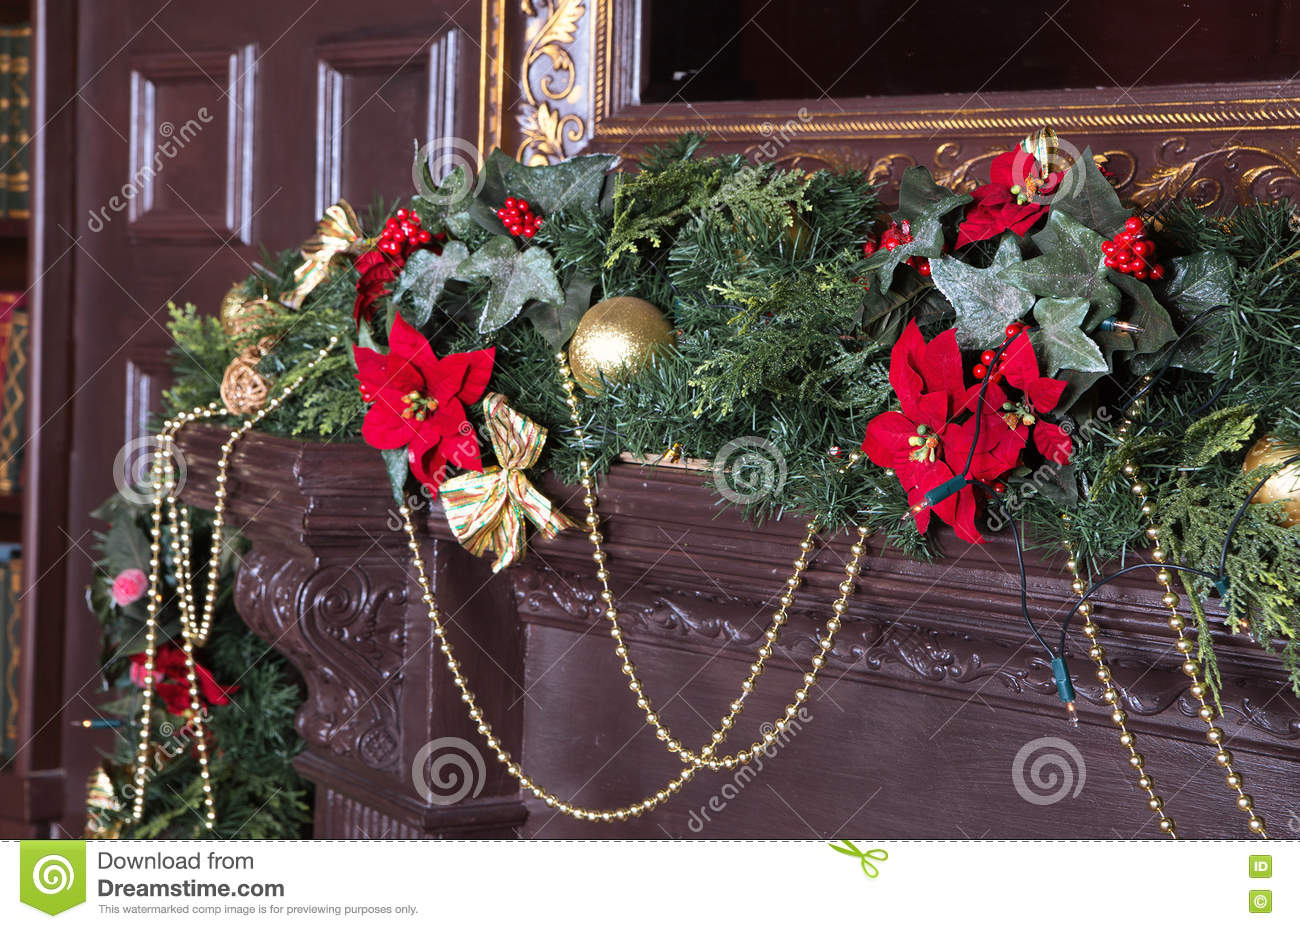 A Fireplace Is Decorated For Christmas With Garland Lights And